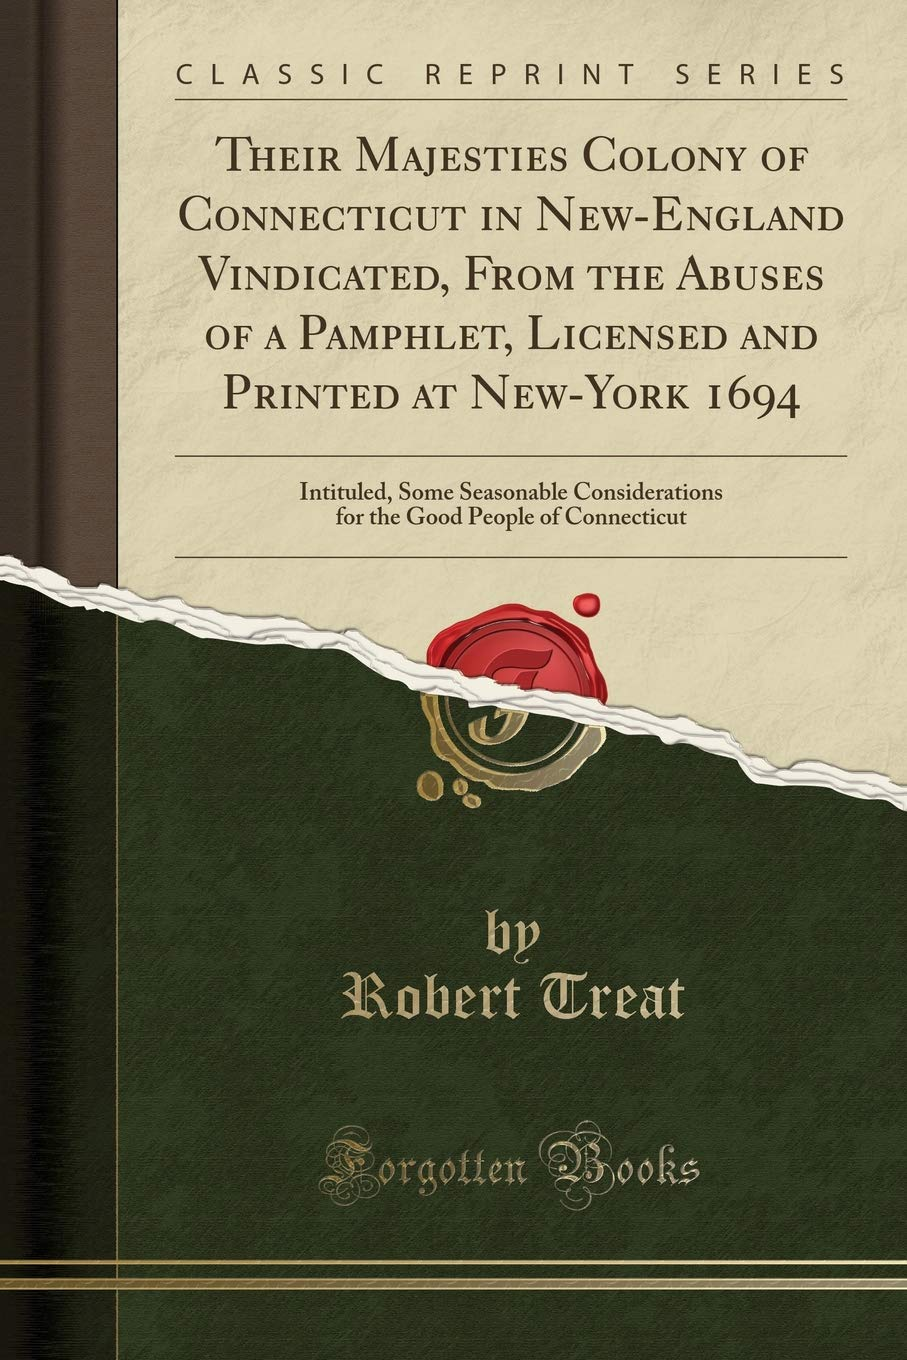 Their Majesties Colony of Connecticut in New-England Vindicated, From the Abuses of a Pamphlet, Licensed and Printed at New-York 1694: Intituled, Some ... Good People of Connecticut (Classic Reprint) PDF